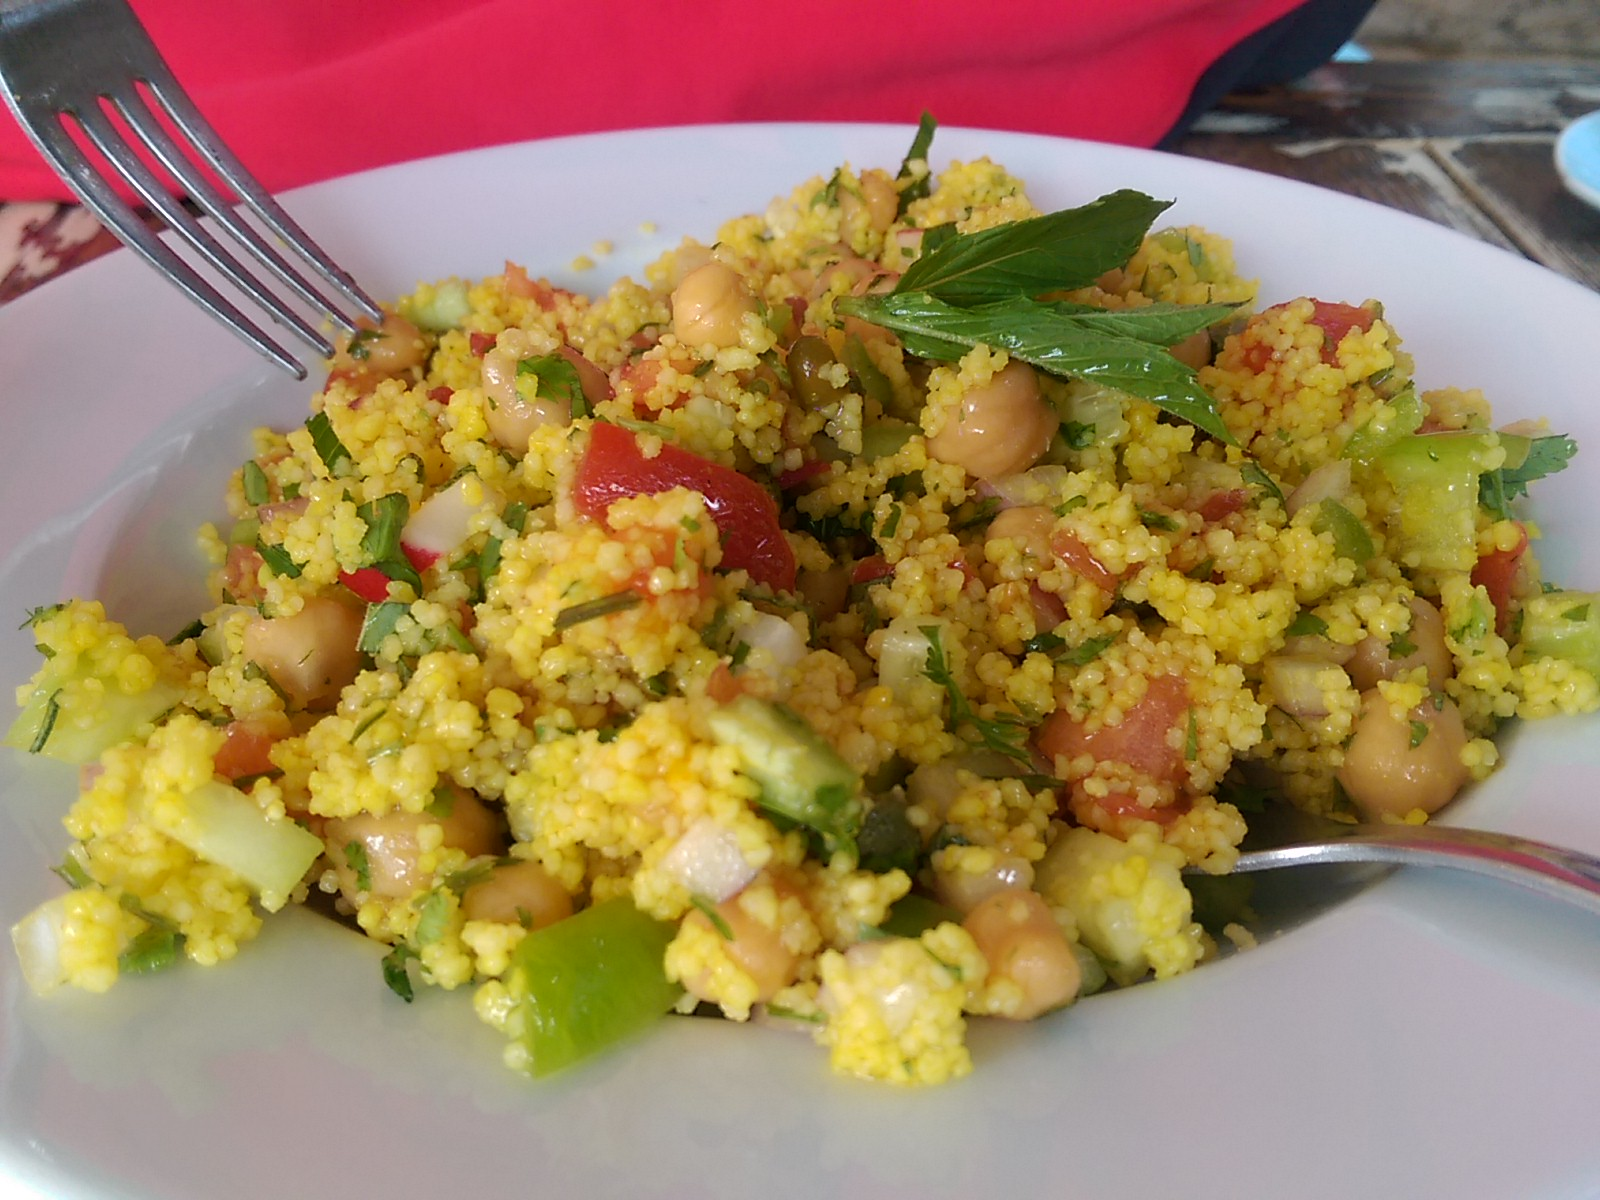 Bright yellow couscous and red and green peppers in a white bowl with a fork